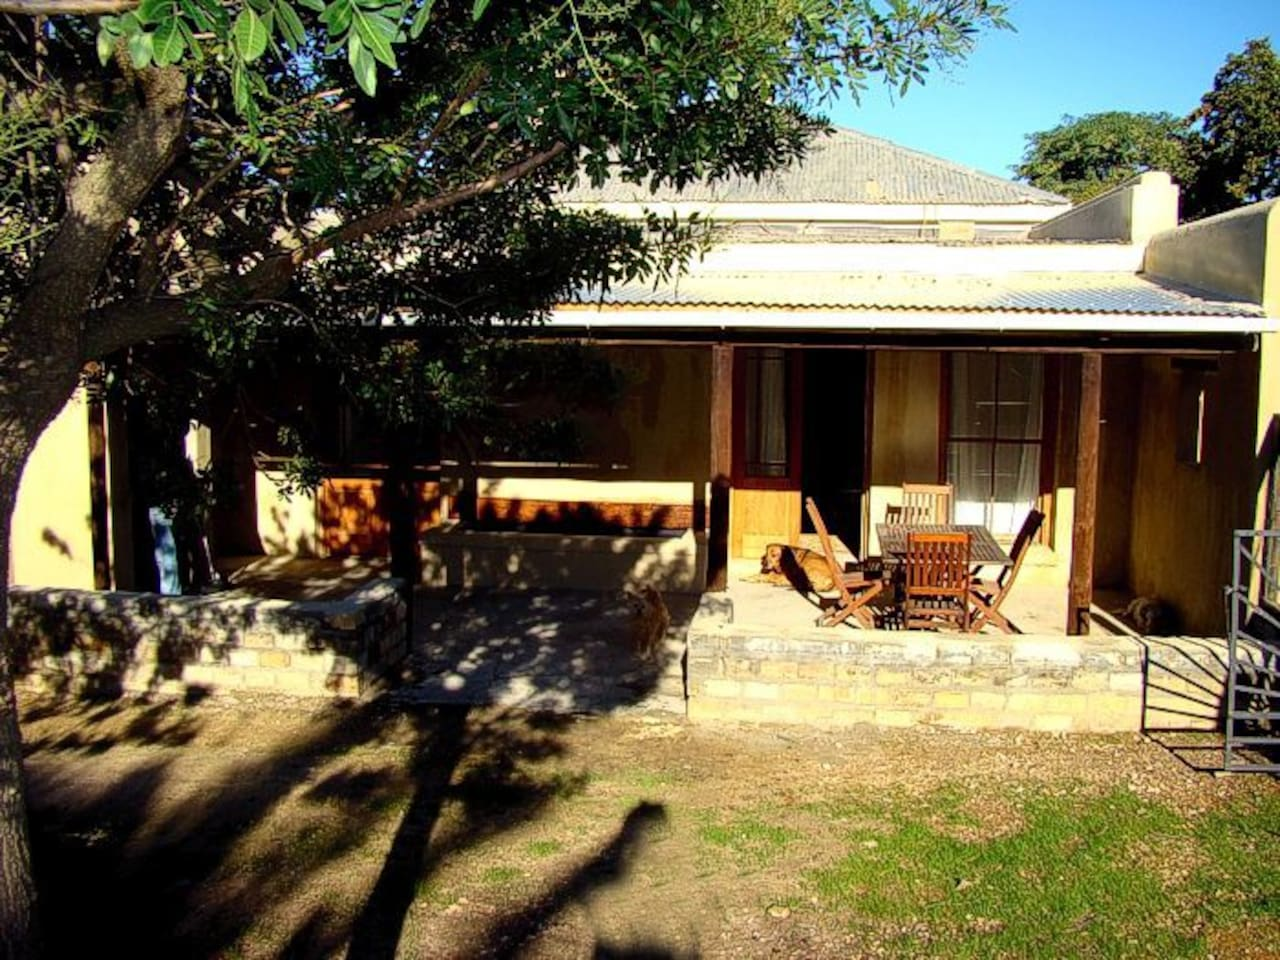 Garden cottage with own stoep and braai place